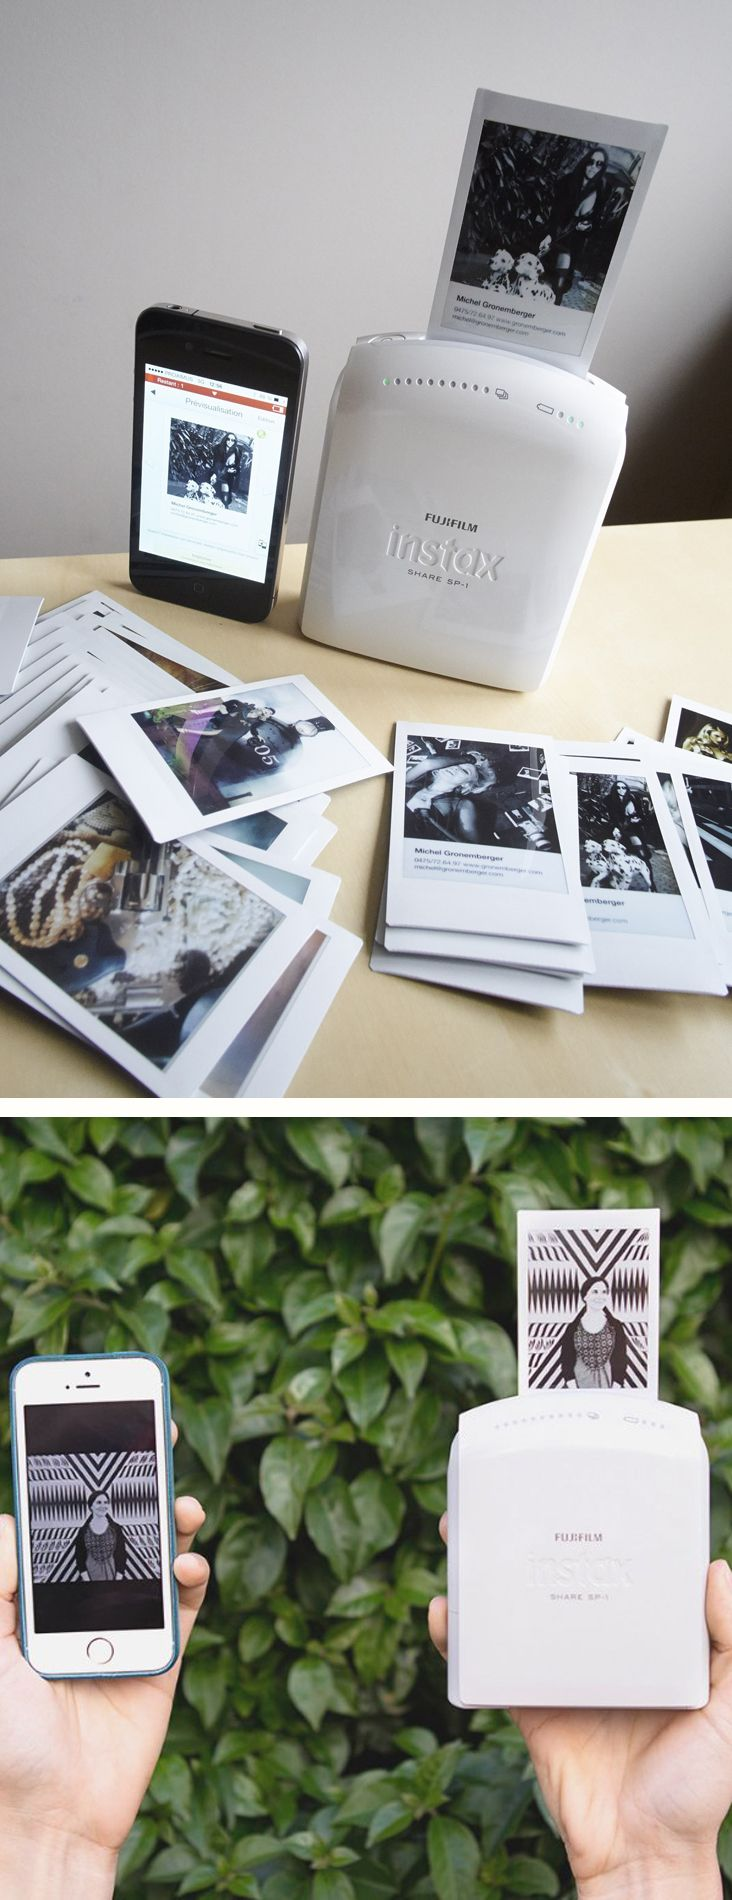 Print the pictures from your Smartphone the Polaroid style: Fujifilm Instax Share Smartphone Printer SP-1